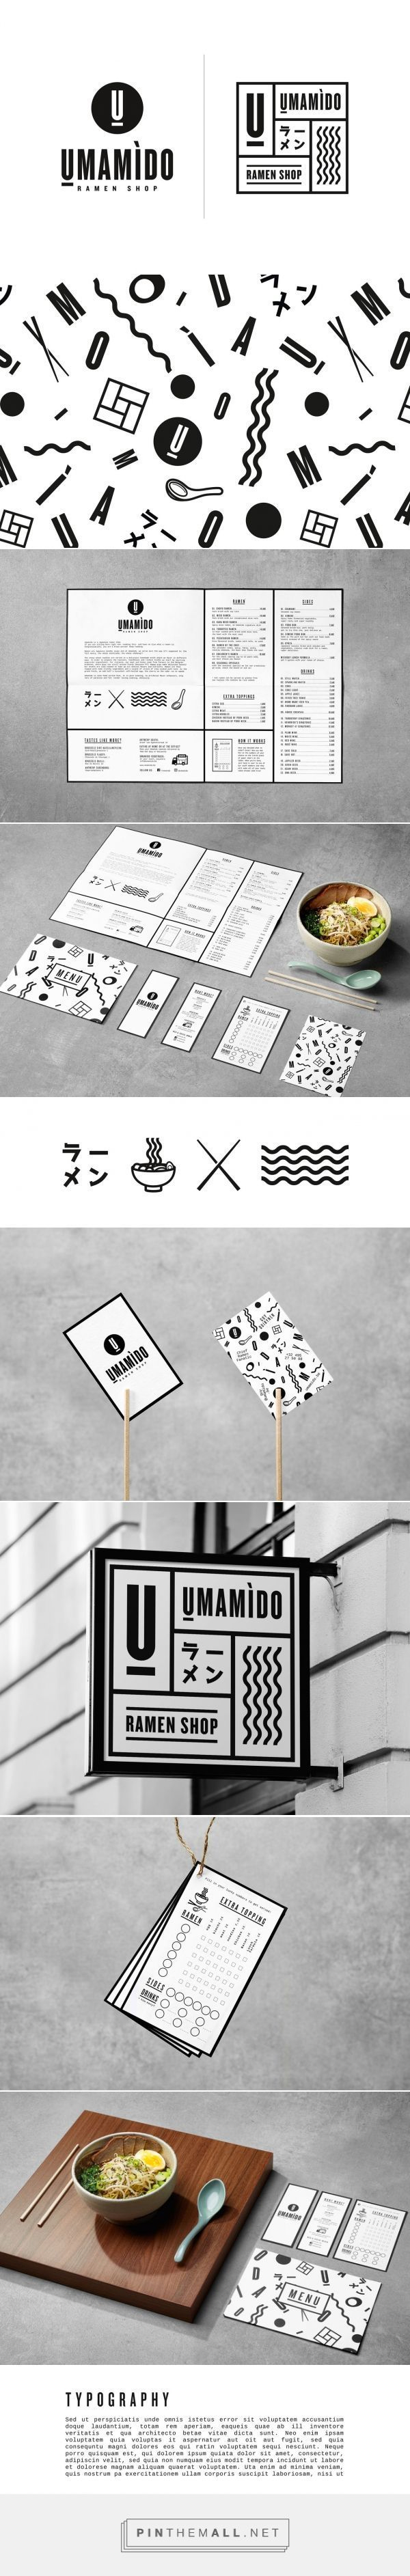 Antwerp and Brussels based Umamido serves traditional Japanese ramen noodles, but with a local accent. The visual identity was full revamped in keeping with the brand image: traditional Japanese themes in stark black & white come together with contemporary elements (like the Memphis-style pattern and iconography), resulting in a traditional visual language spiced up with playful twists. Umamido by Pinkeye Design Studio